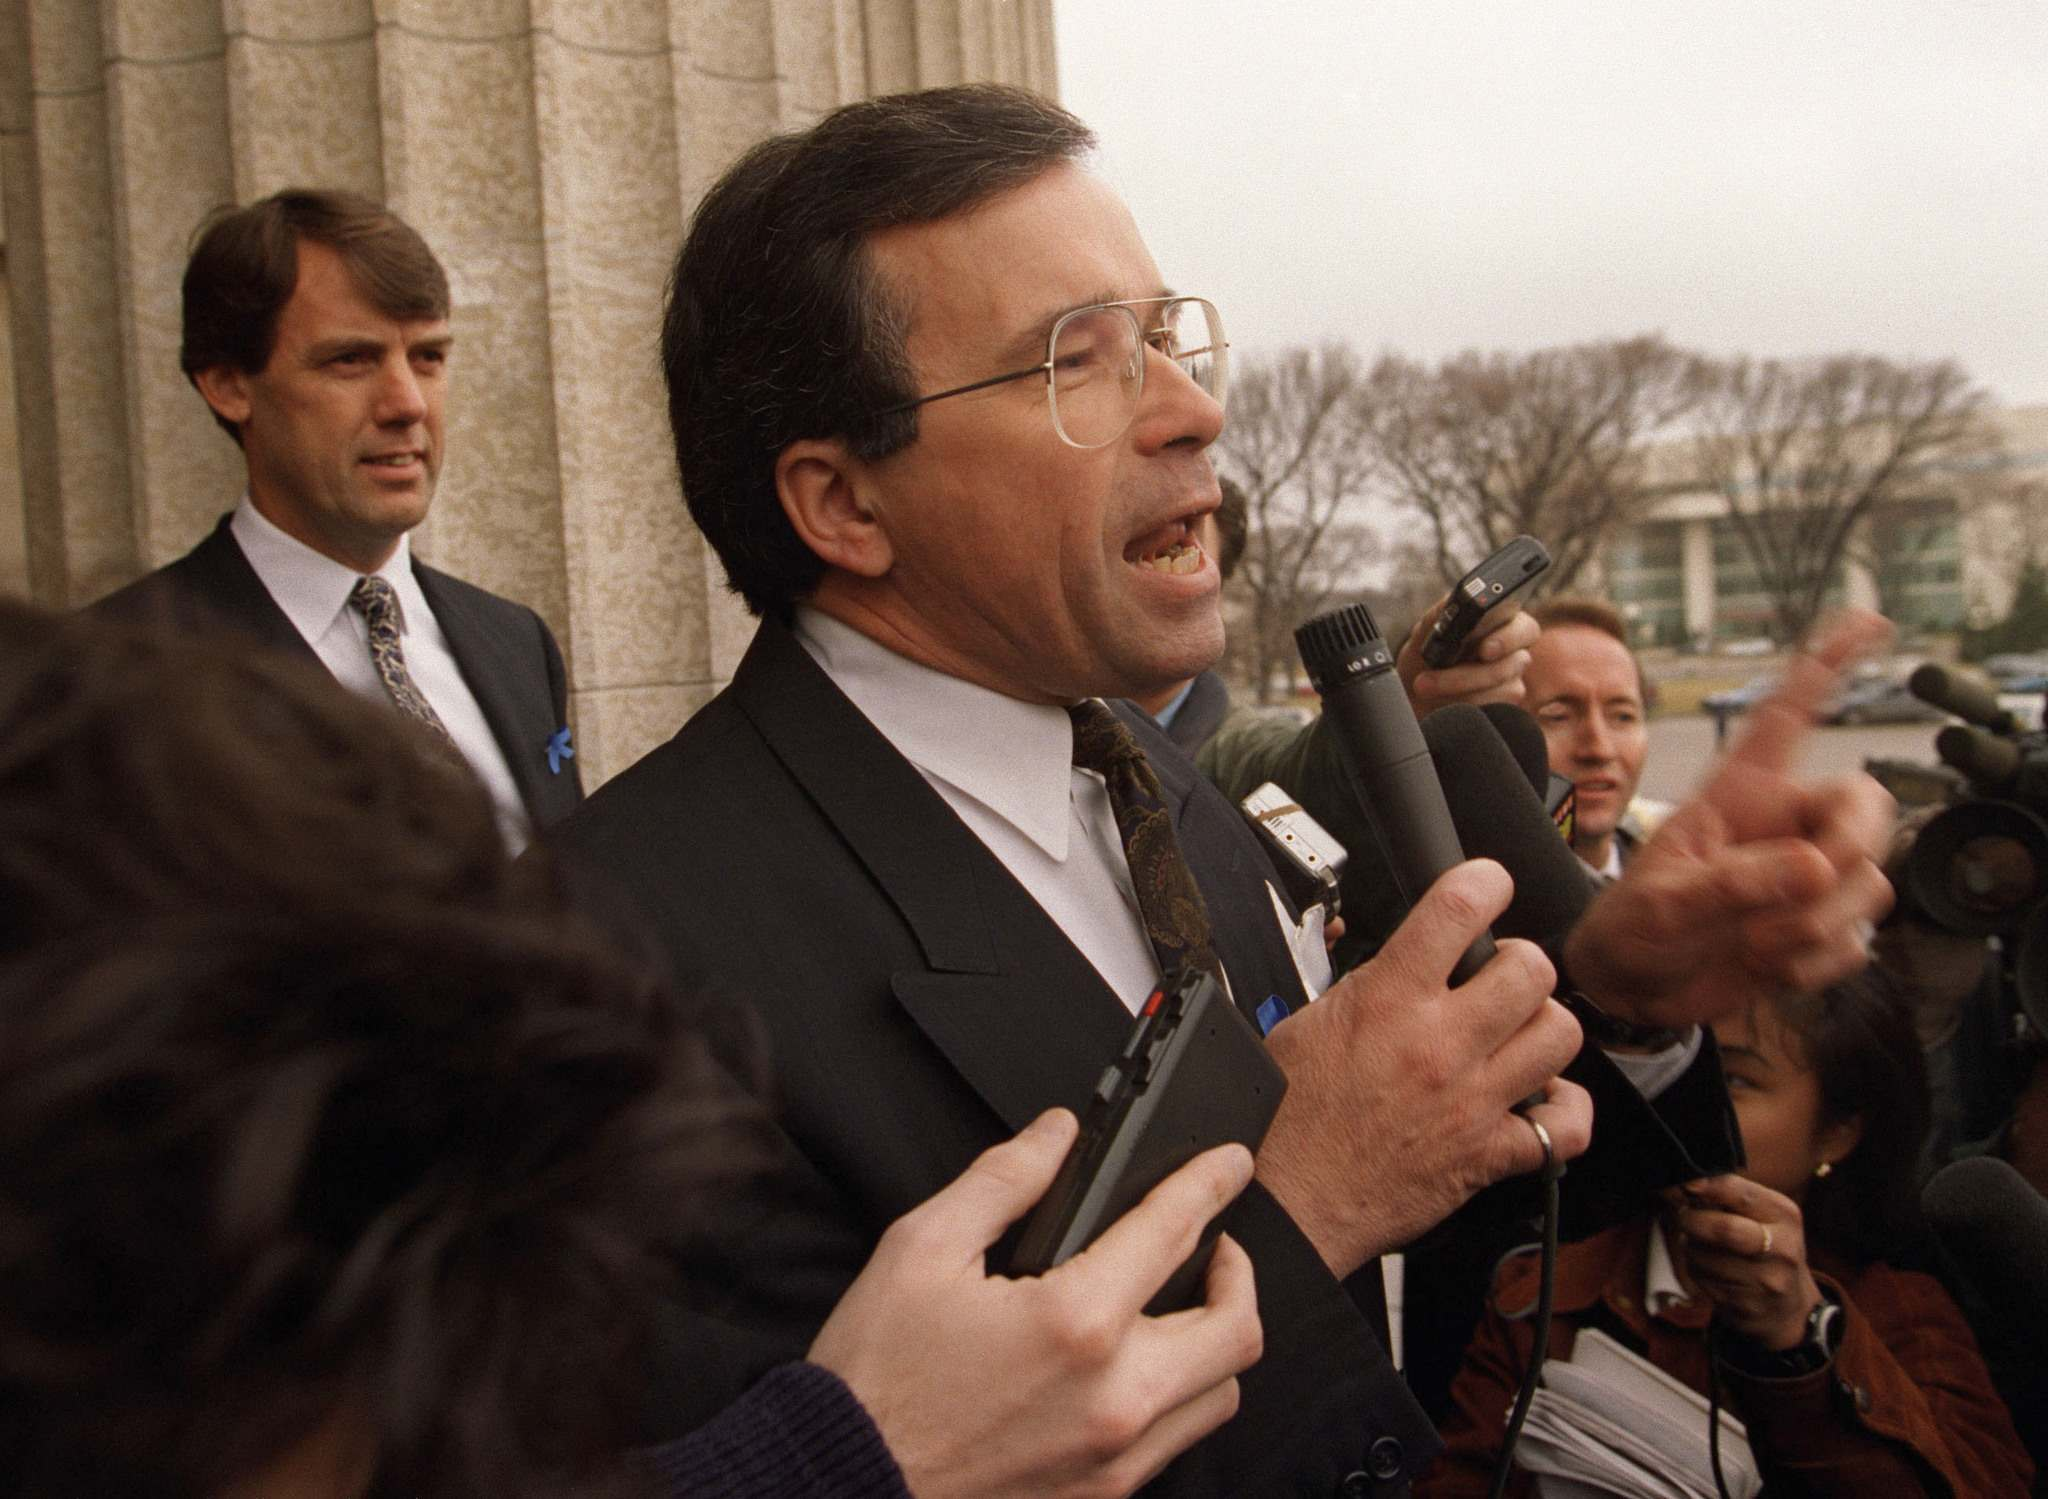 KEN GIGLIOTTI / WINNIPEG FREE PRESS FILES</p><p>In 1995, then-premier Gary Filmon addresses Save the Jets demonstrators who hoped to prevent the NHL team from leaving Winnipeg.</p>